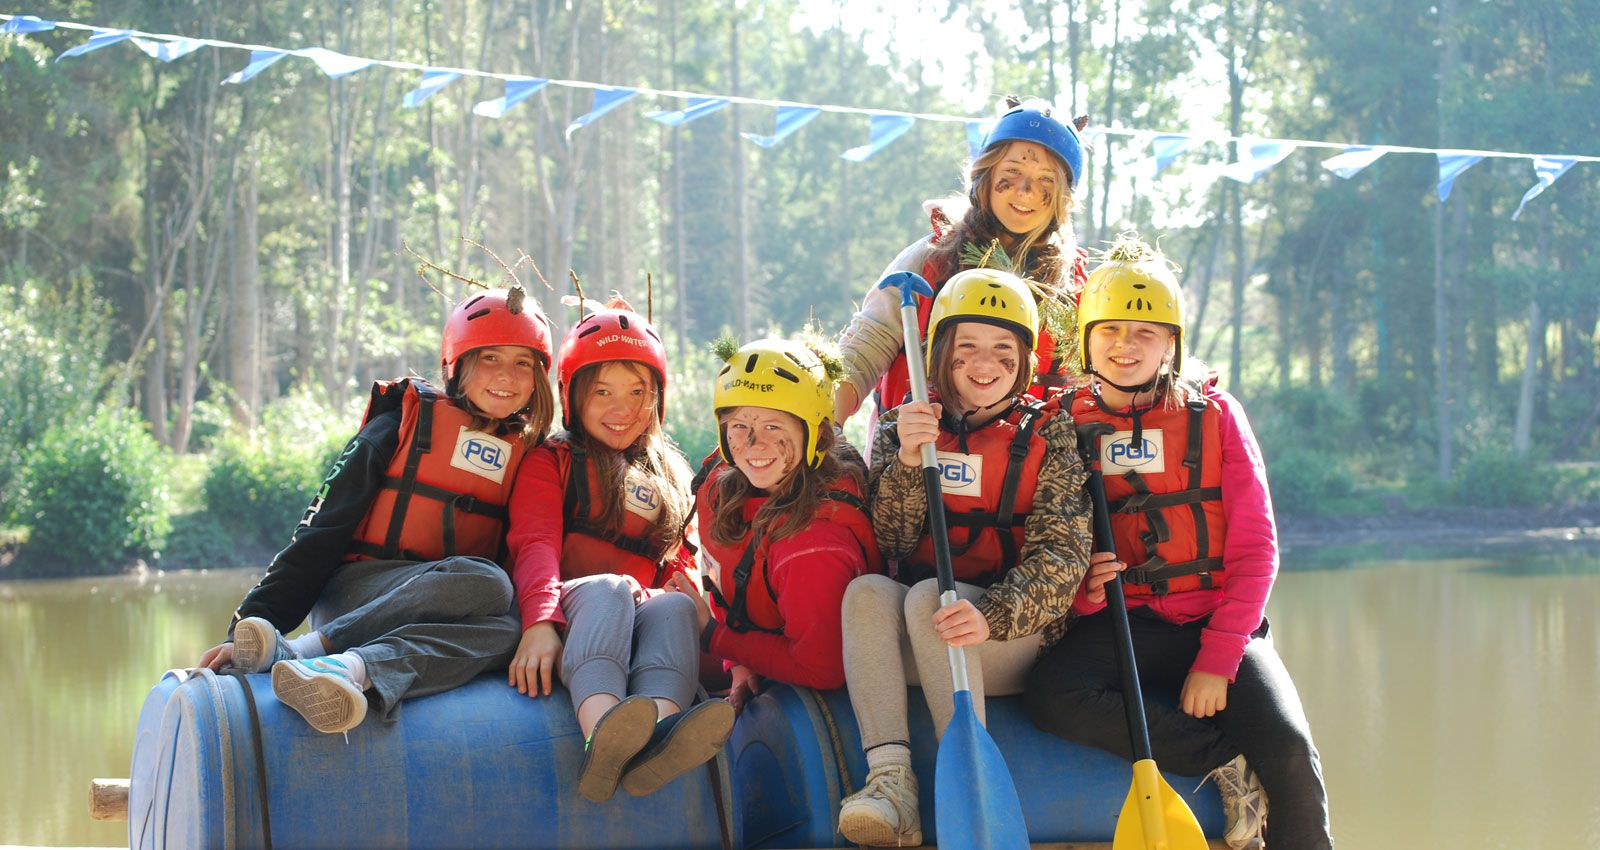 PGL Adventure Holidays - Multi-Activity Holidays and Summer Camps across the UK - Introductory Adventures - First Timers